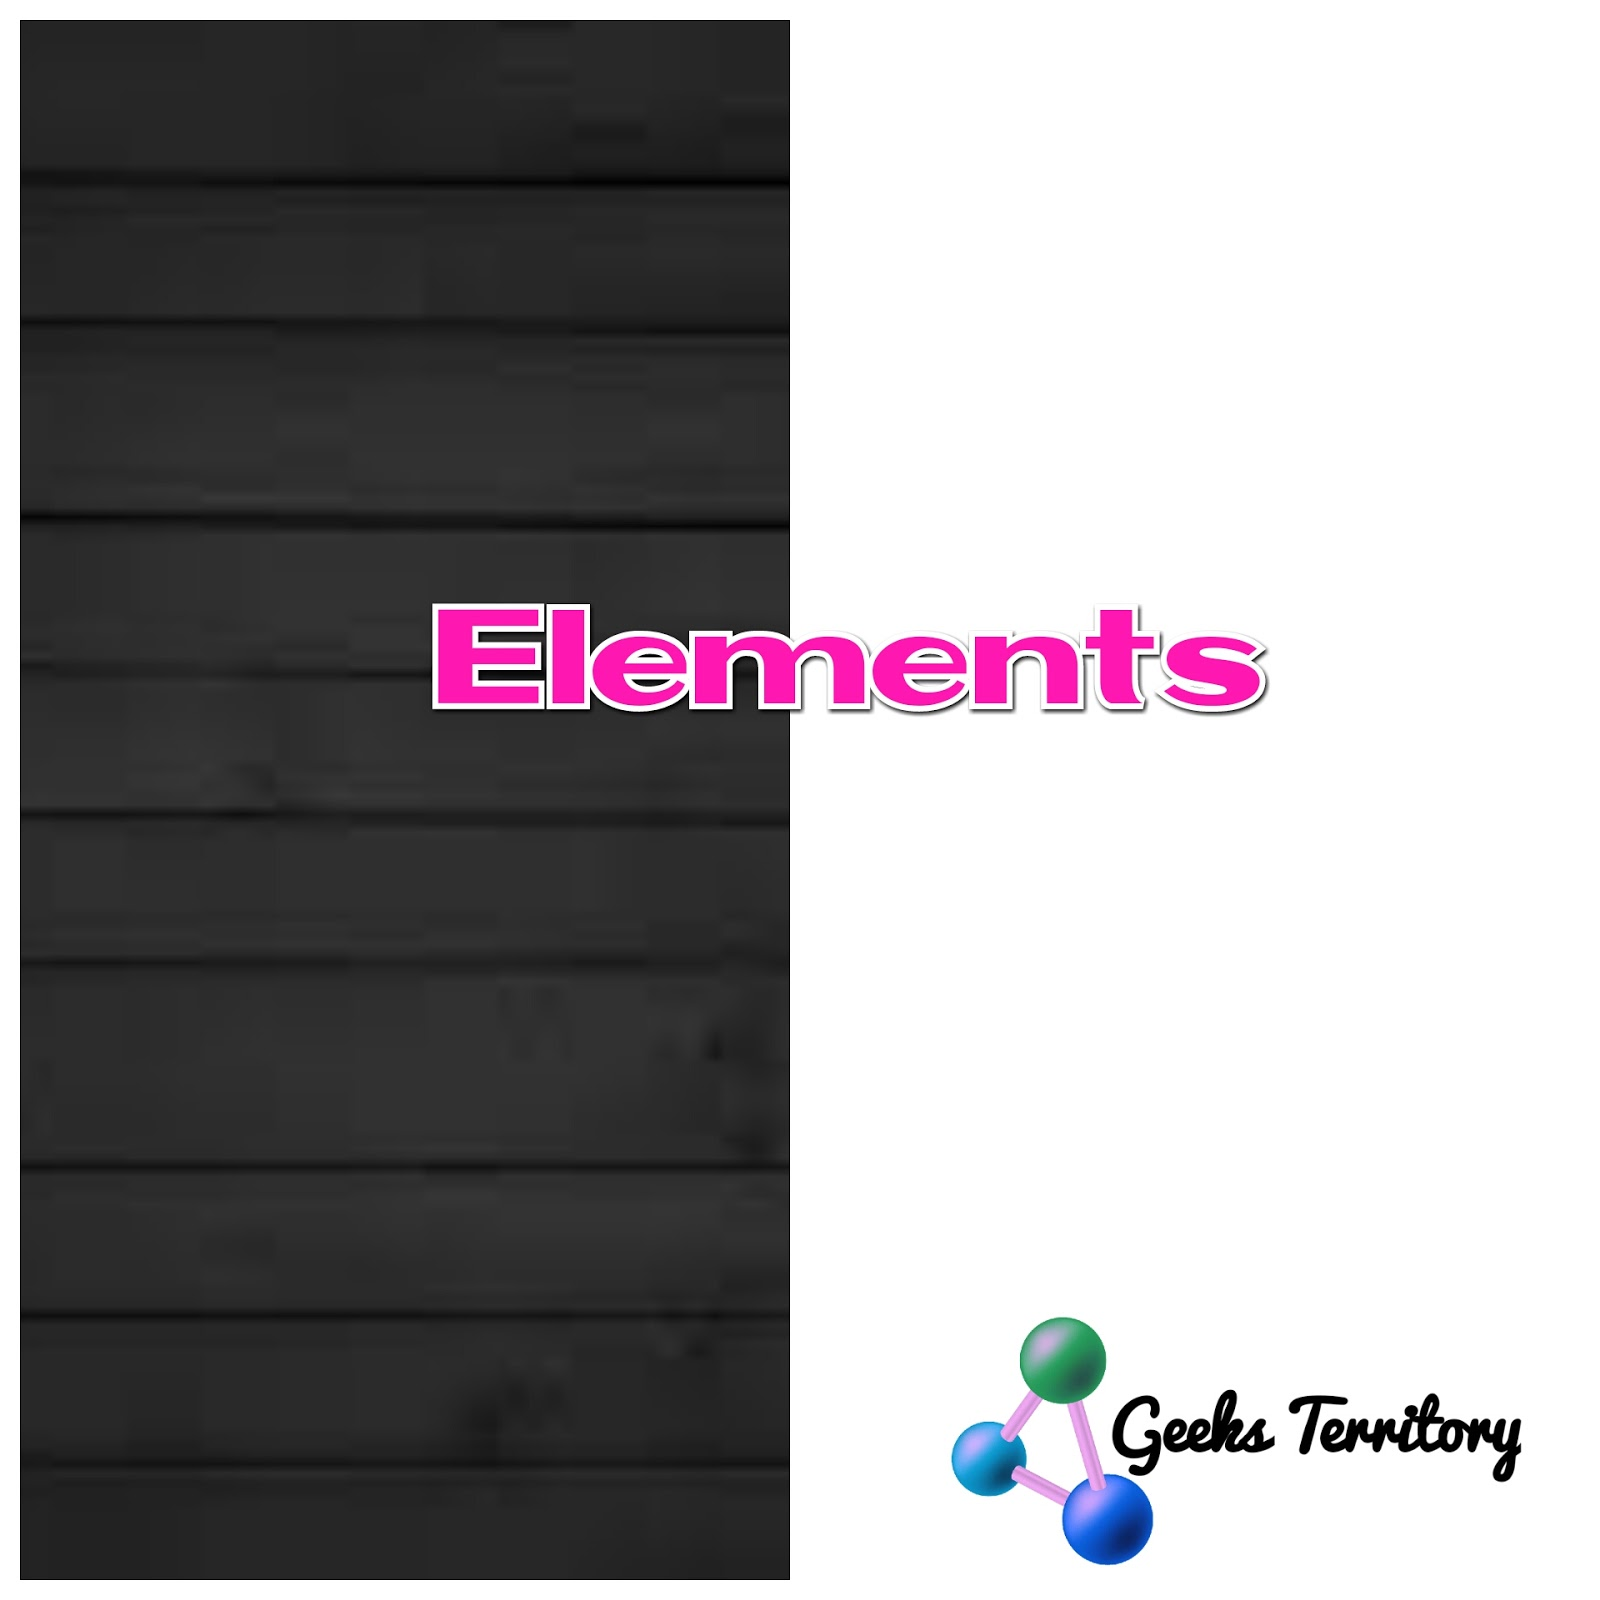 Elements Metals Valency Numbers And Symbols Welcome To The